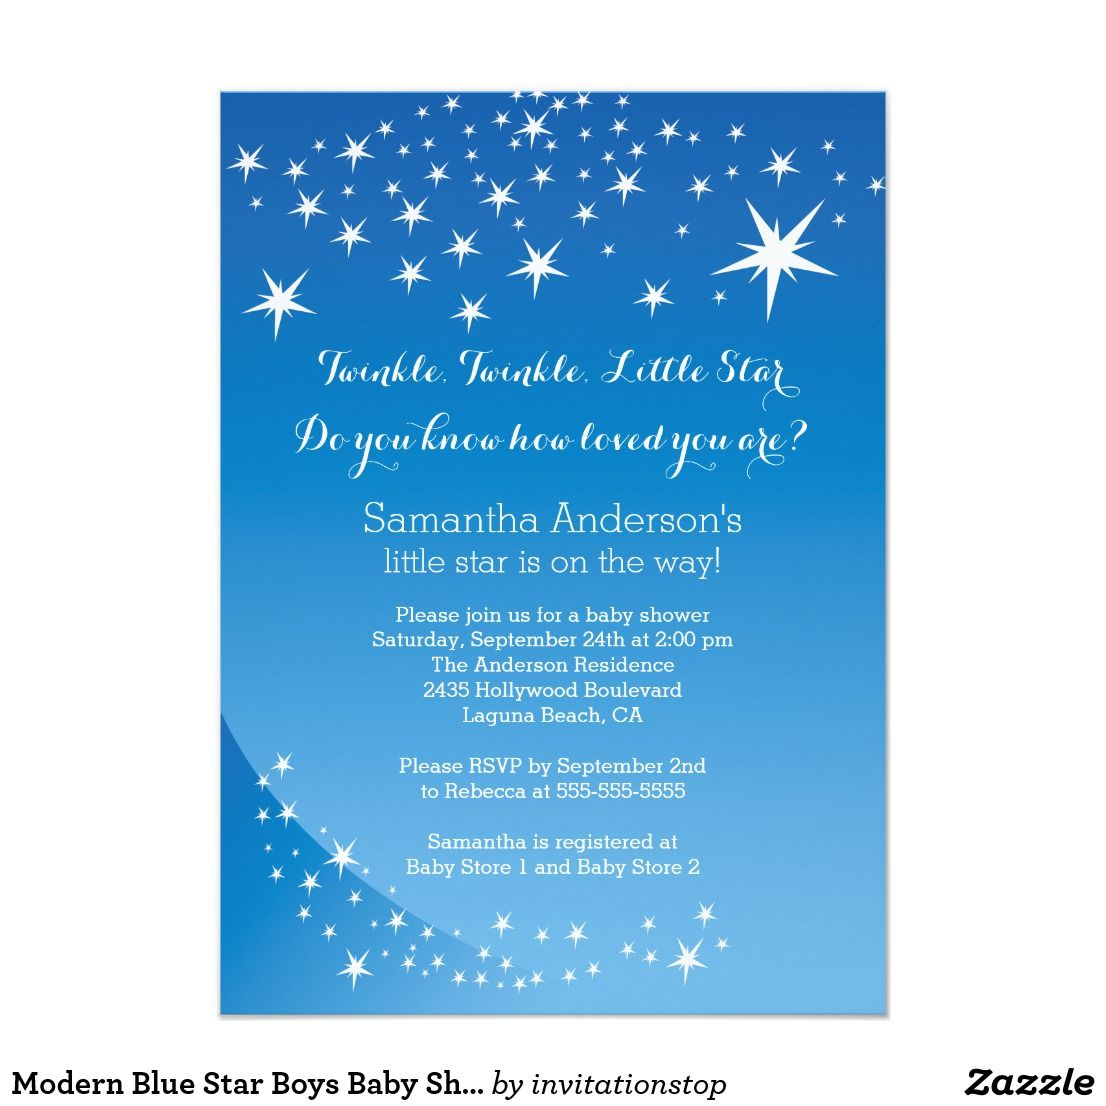 Modern Blue Star Boys Baby Shower Invitation